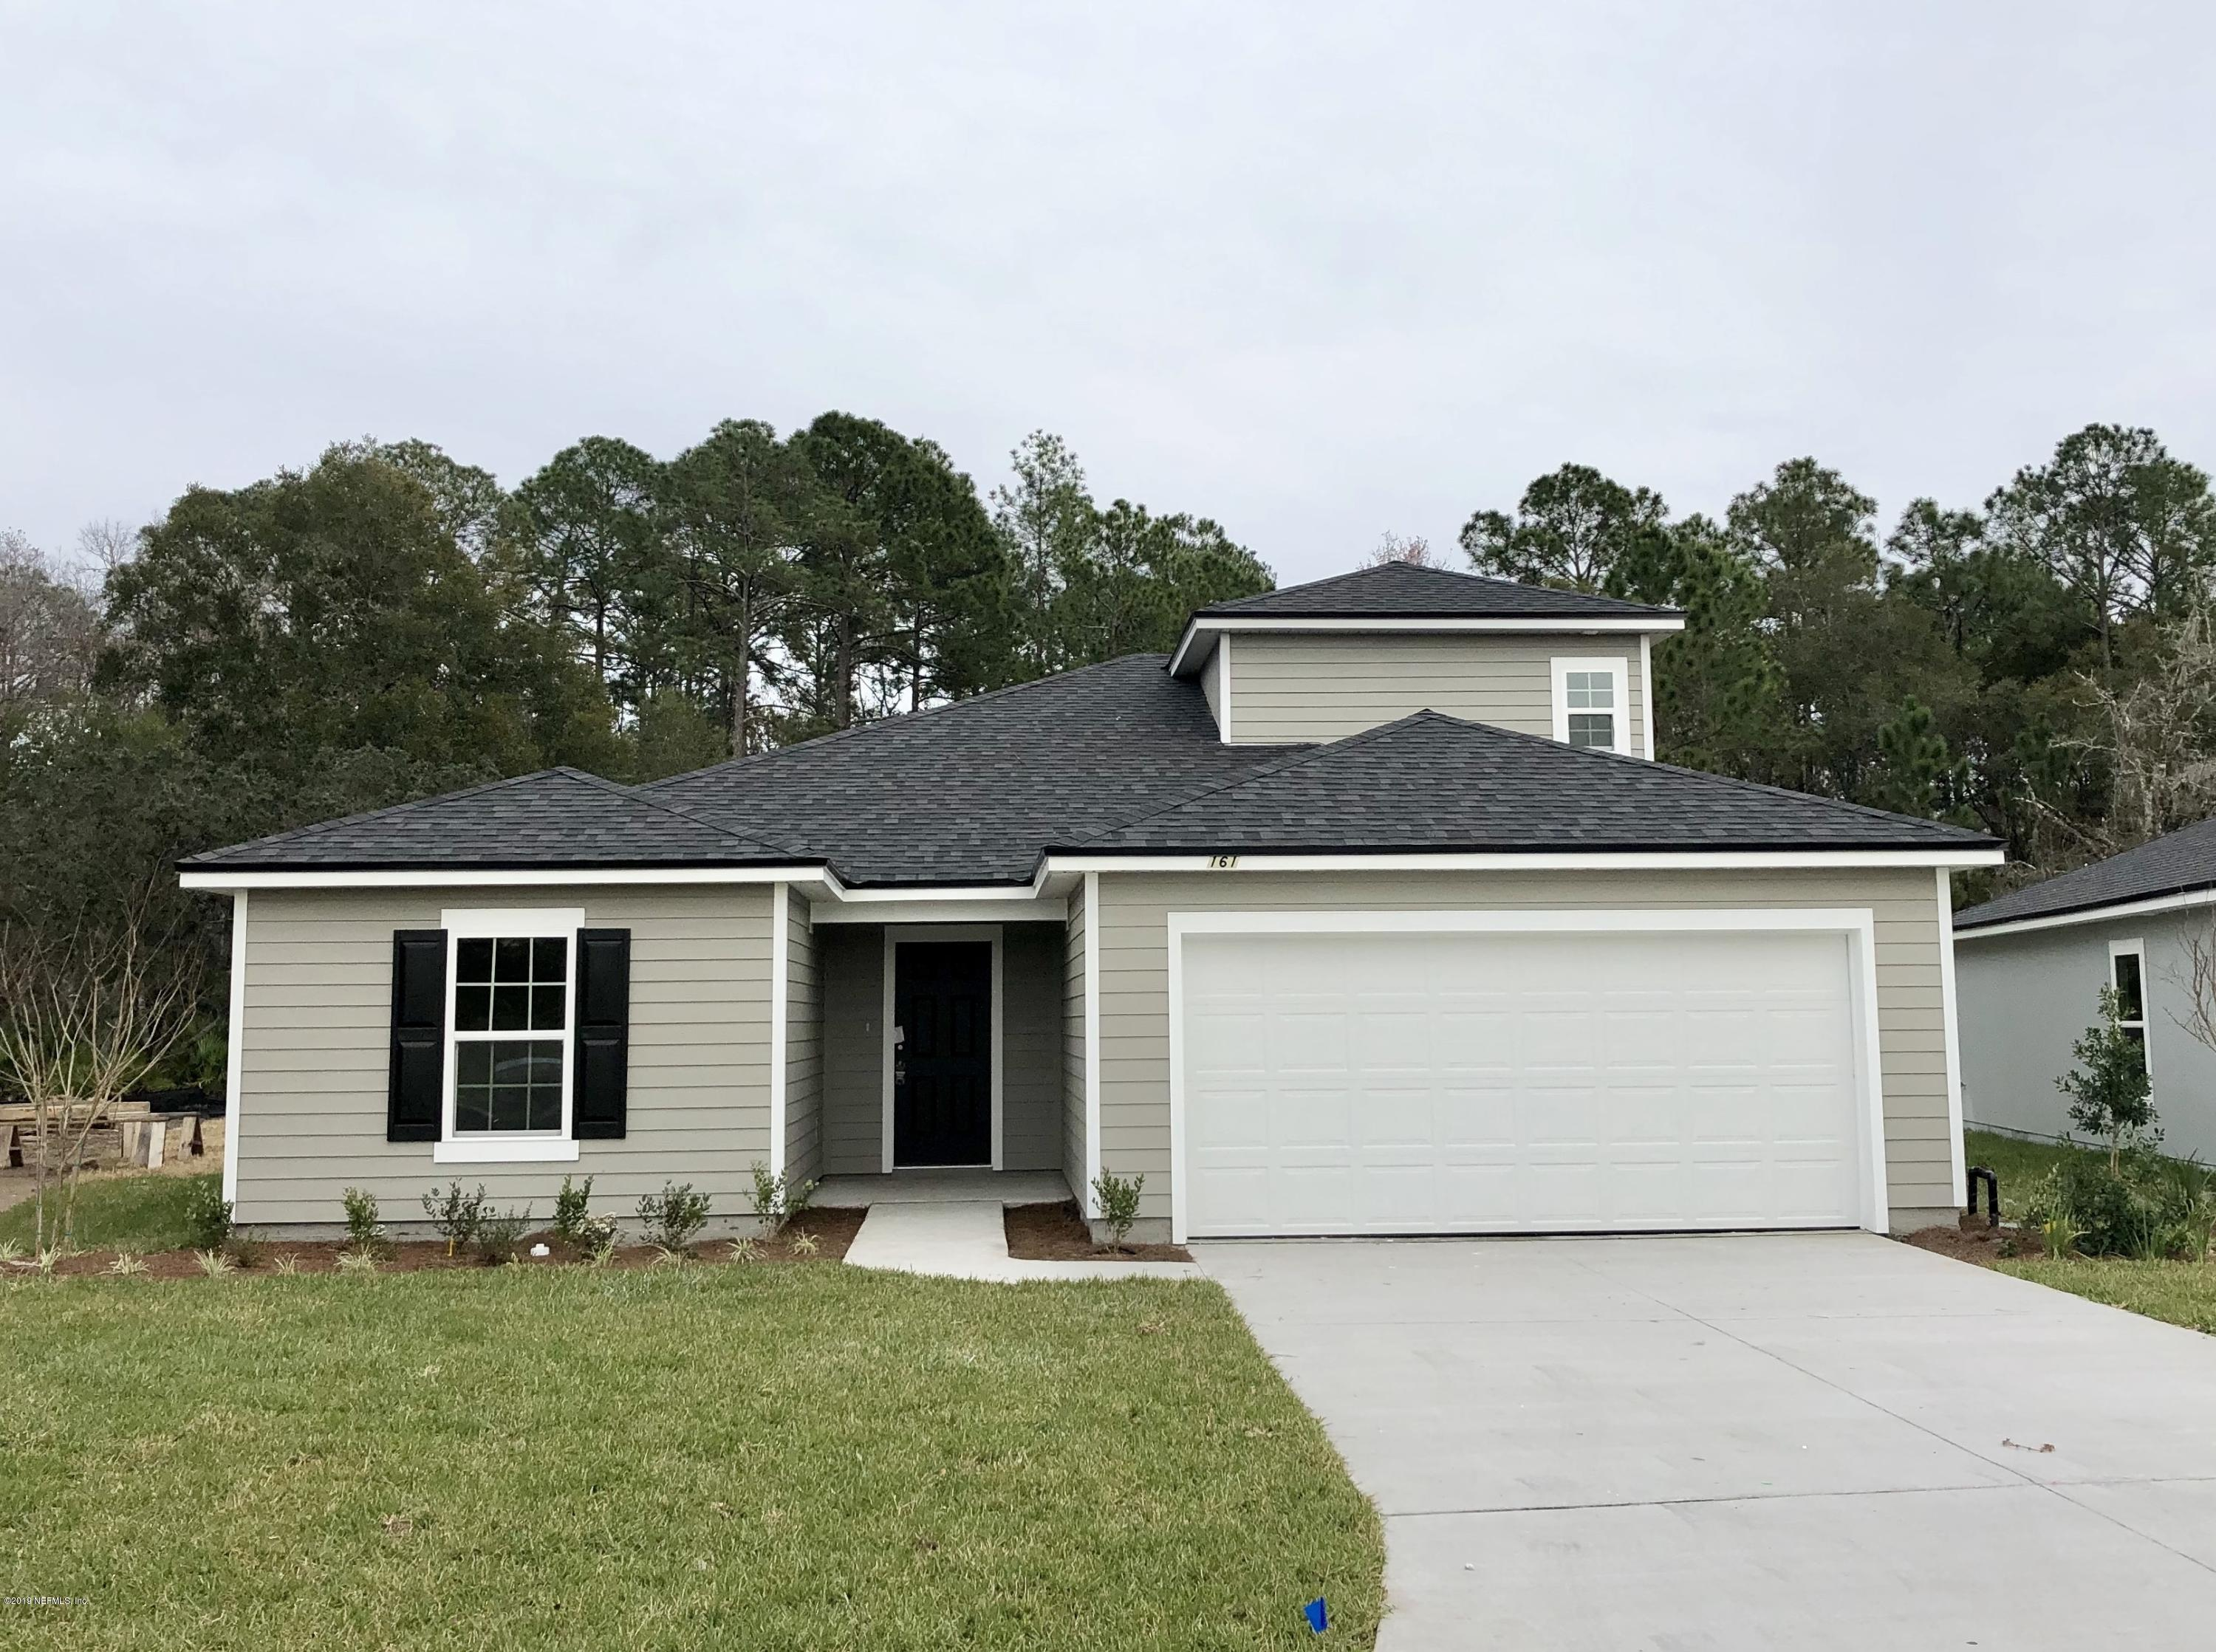 3008 FIRETHORN, ORANGE PARK, FLORIDA 32073, 4 Bedrooms Bedrooms, ,3 BathroomsBathrooms,Residential - single family,For sale,FIRETHORN,1021876